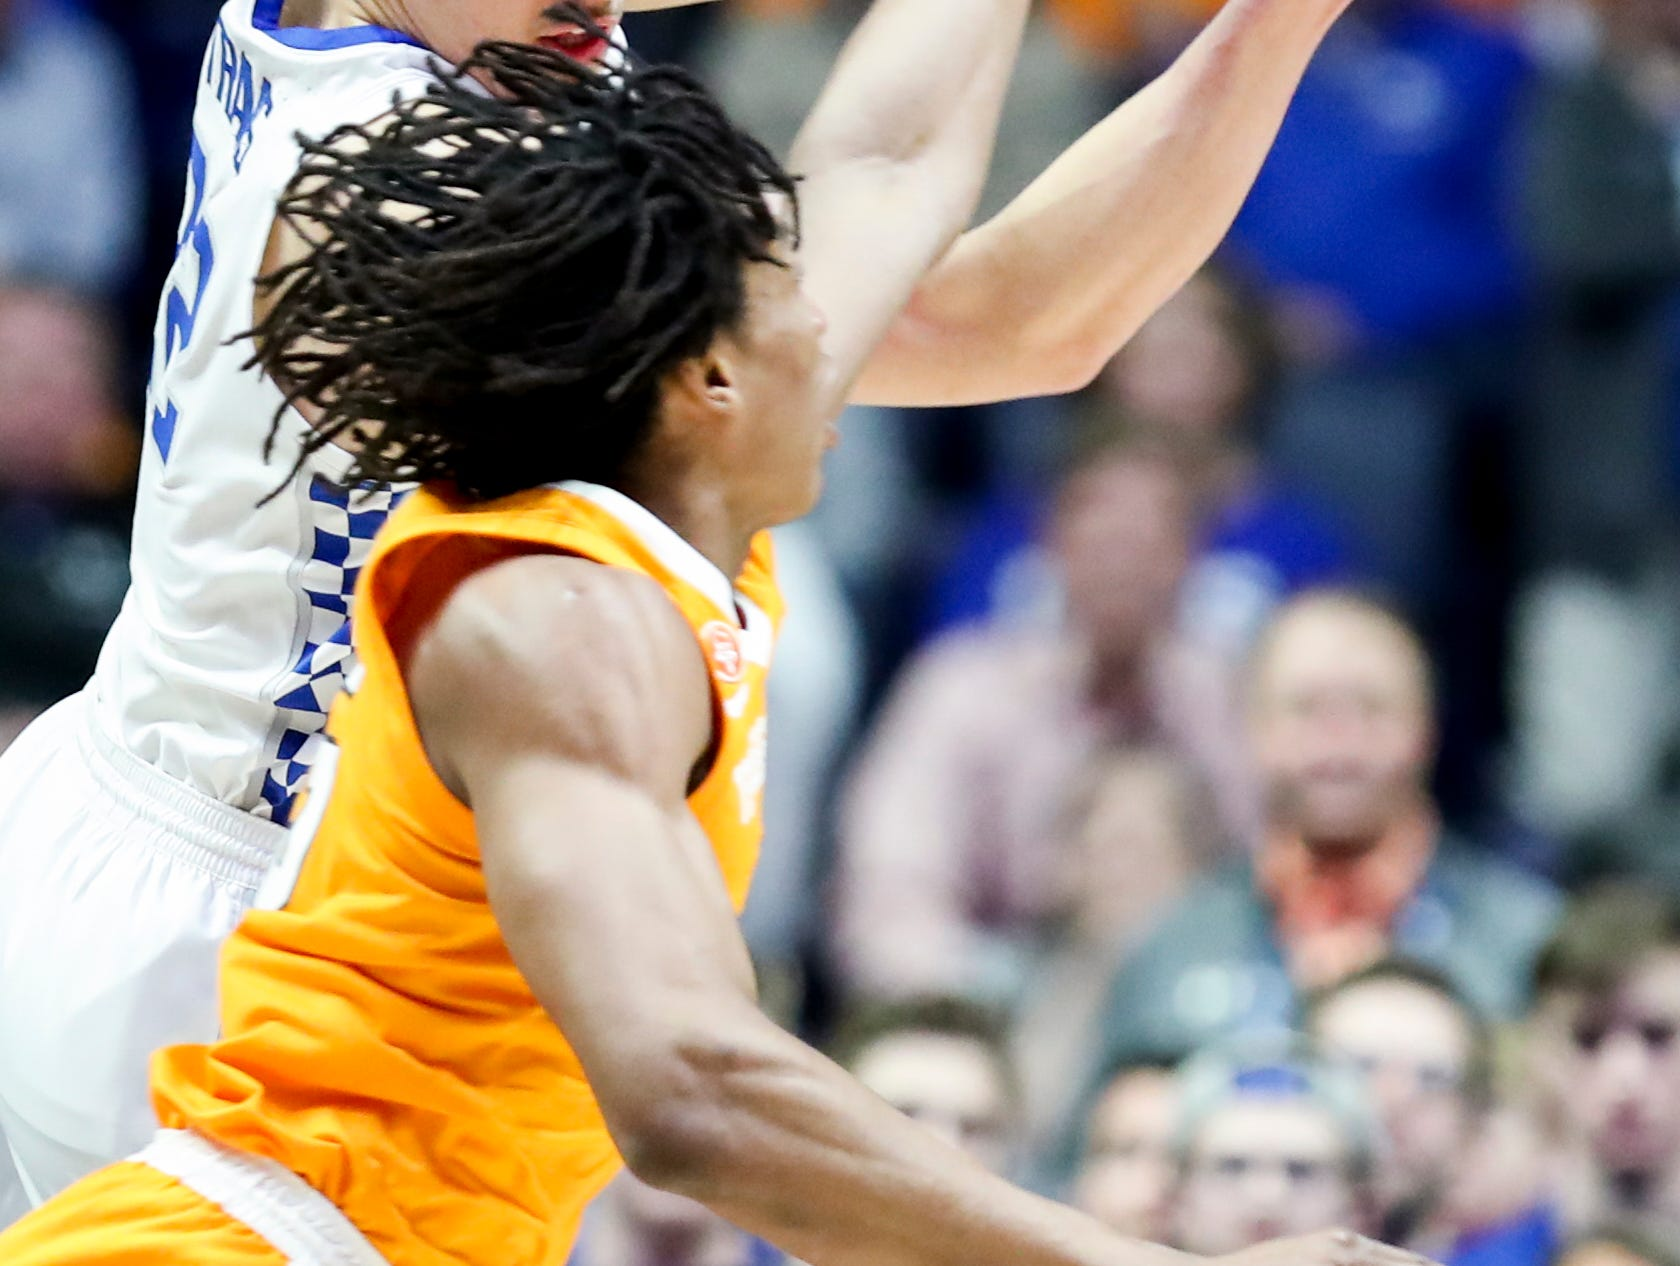 Tennessee forward Yves Pons (35) battles for the ball with Kentucky forward Reid Travis (22) during the first half of the SEC Men's Basketball Tournament semifinal game at Bridgestone Arena in Nashville, Tenn., Saturday, March 16, 2019.